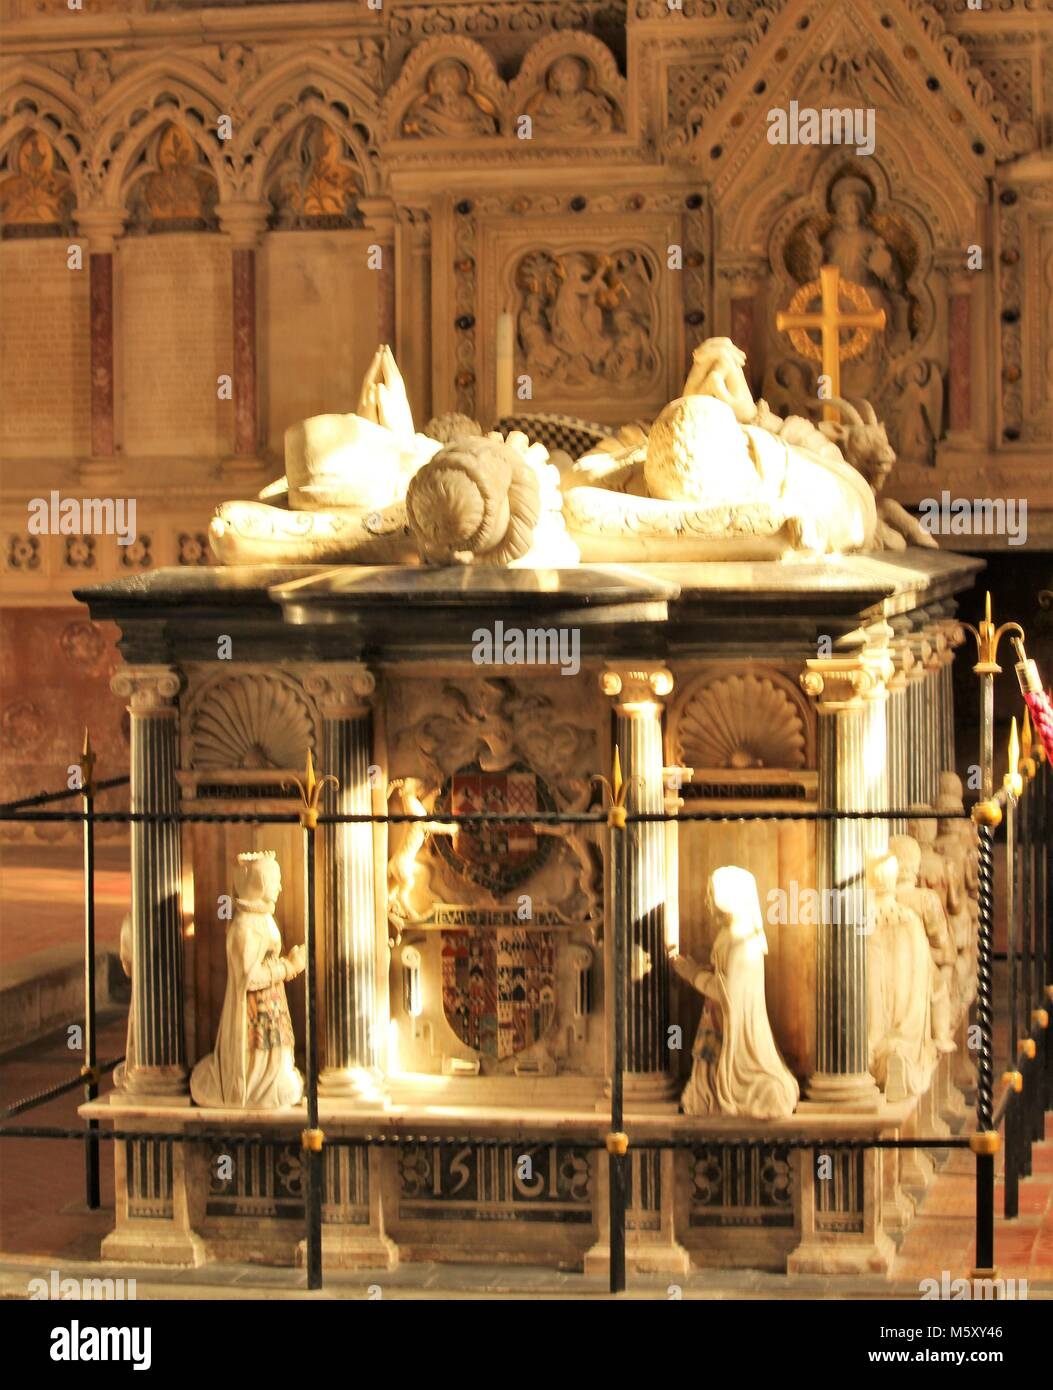 The Tomb of the 9th Baron of Cobham, St Mary Magdalene Church, Cobham, Gravesend, Kent - Stock Image